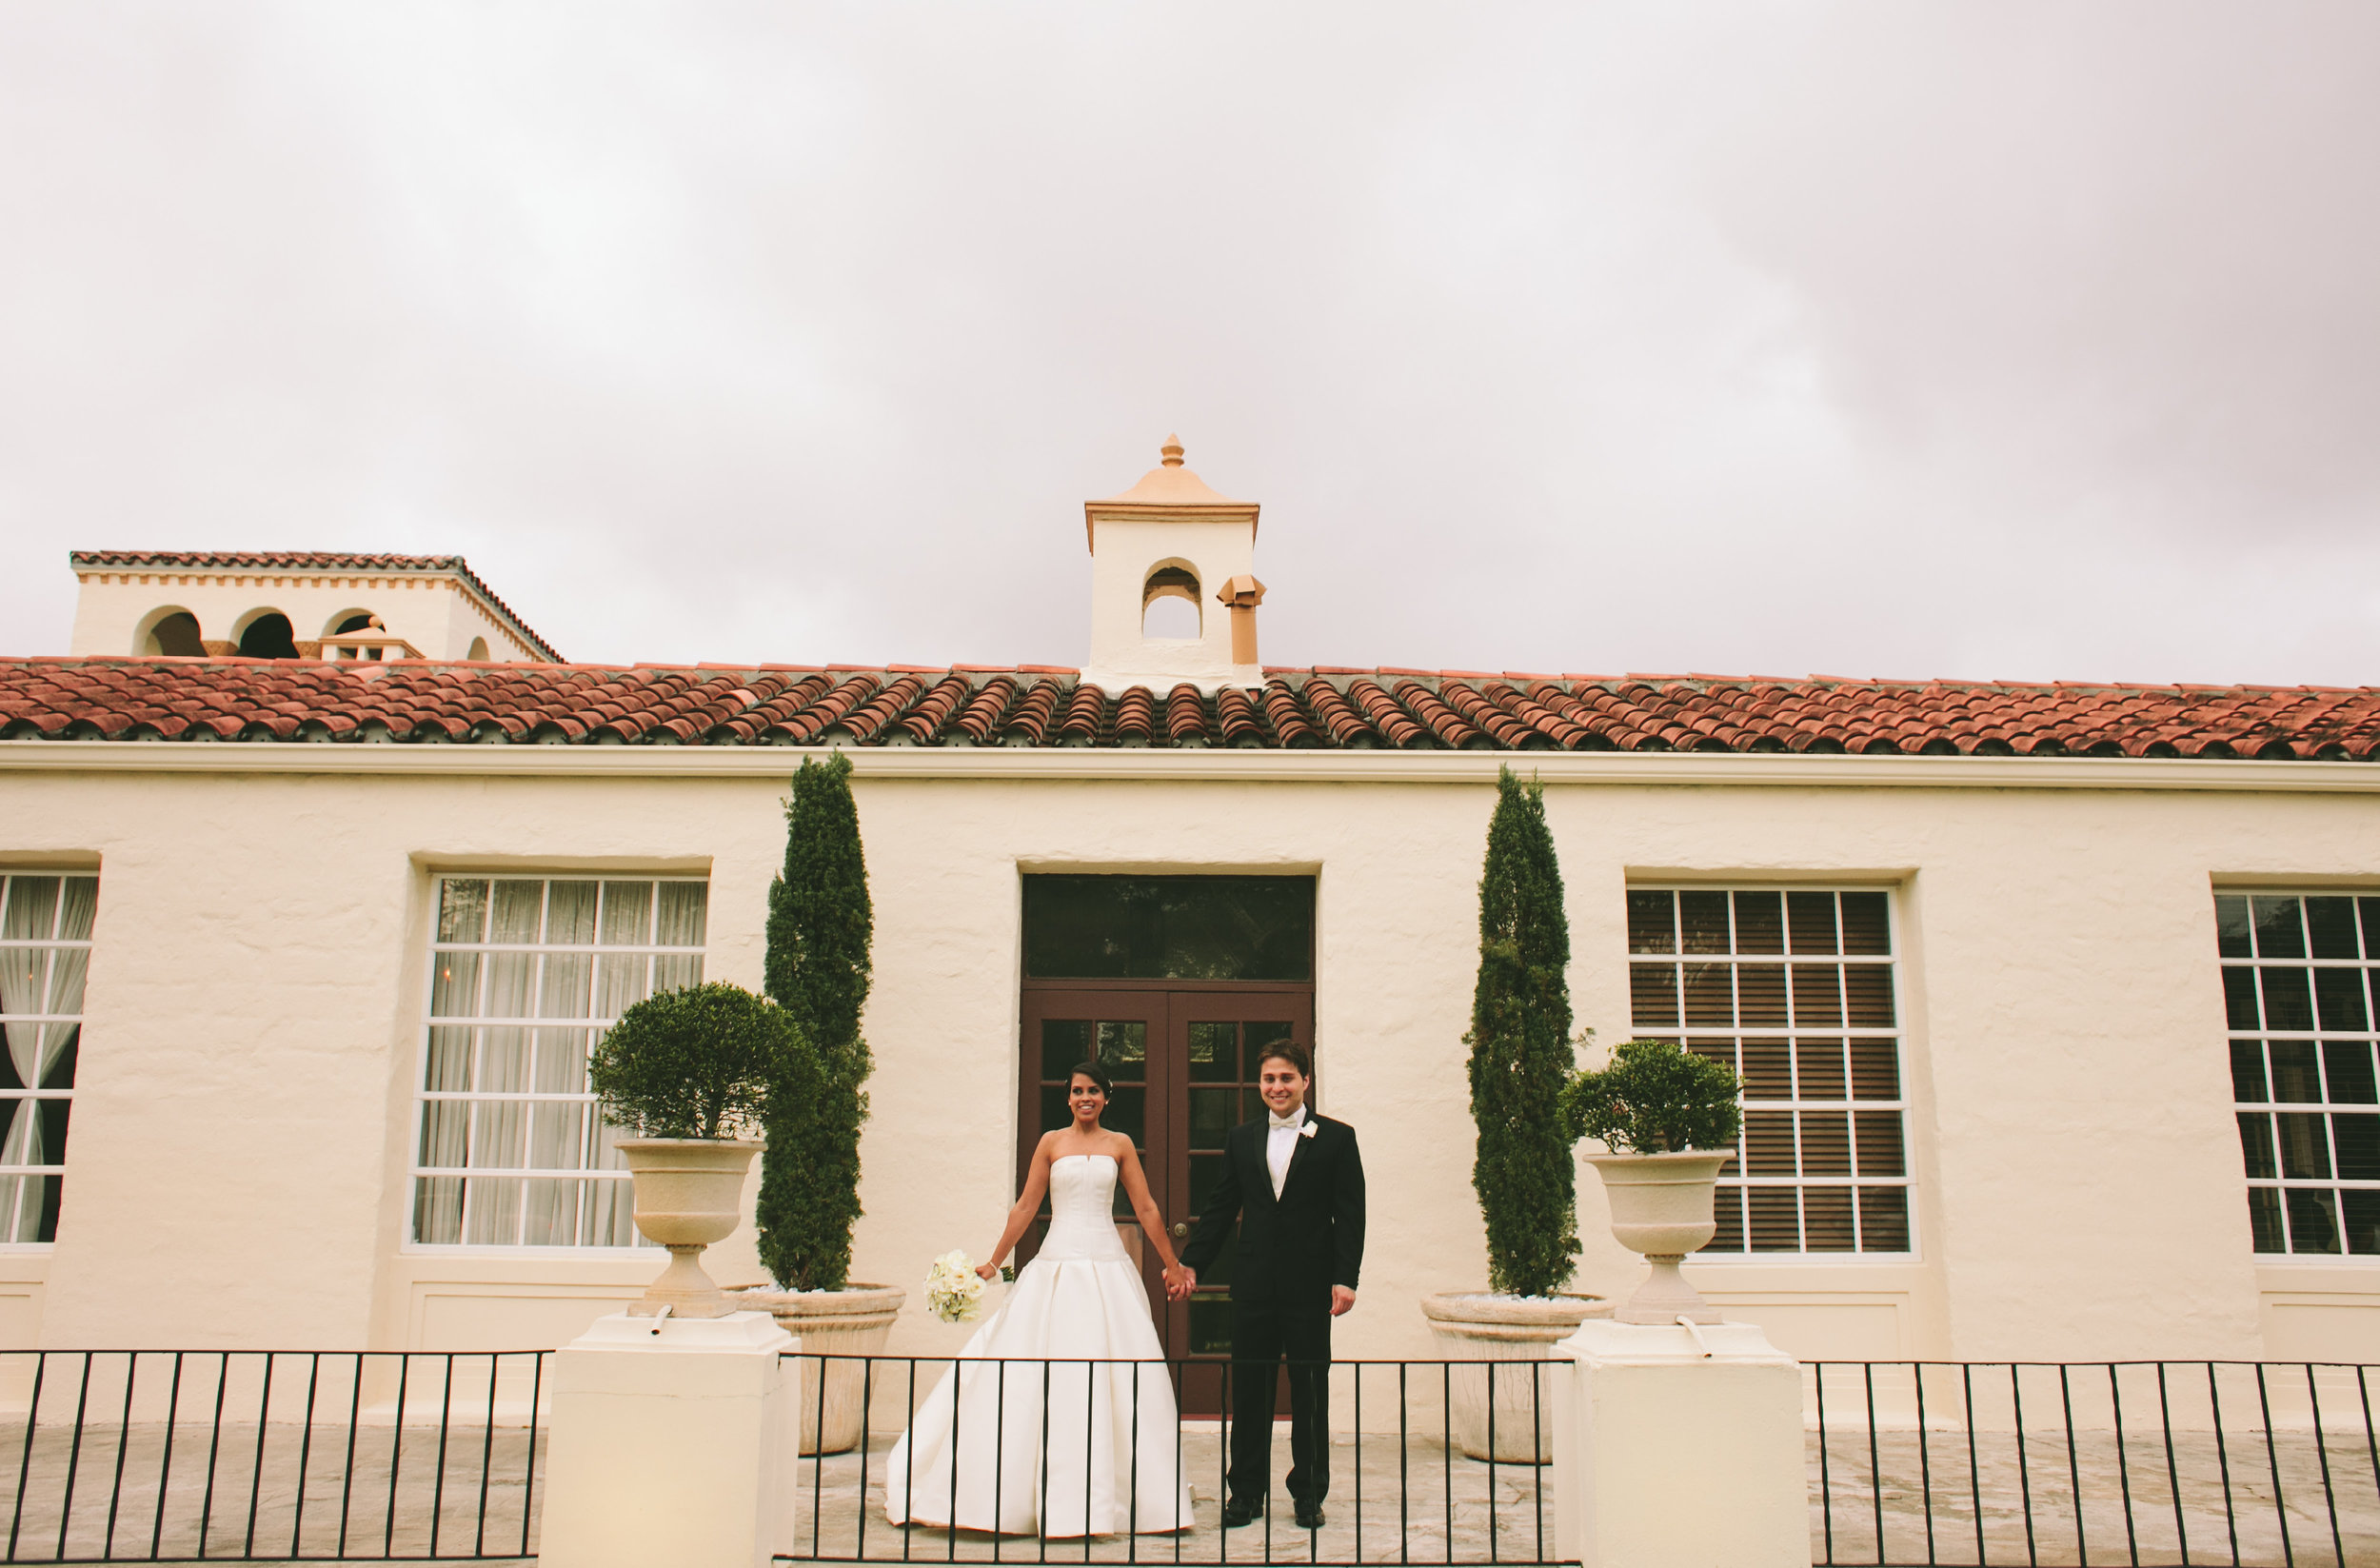 Liz + Julian Coral Gables Cocoplum Wedding39.jpg